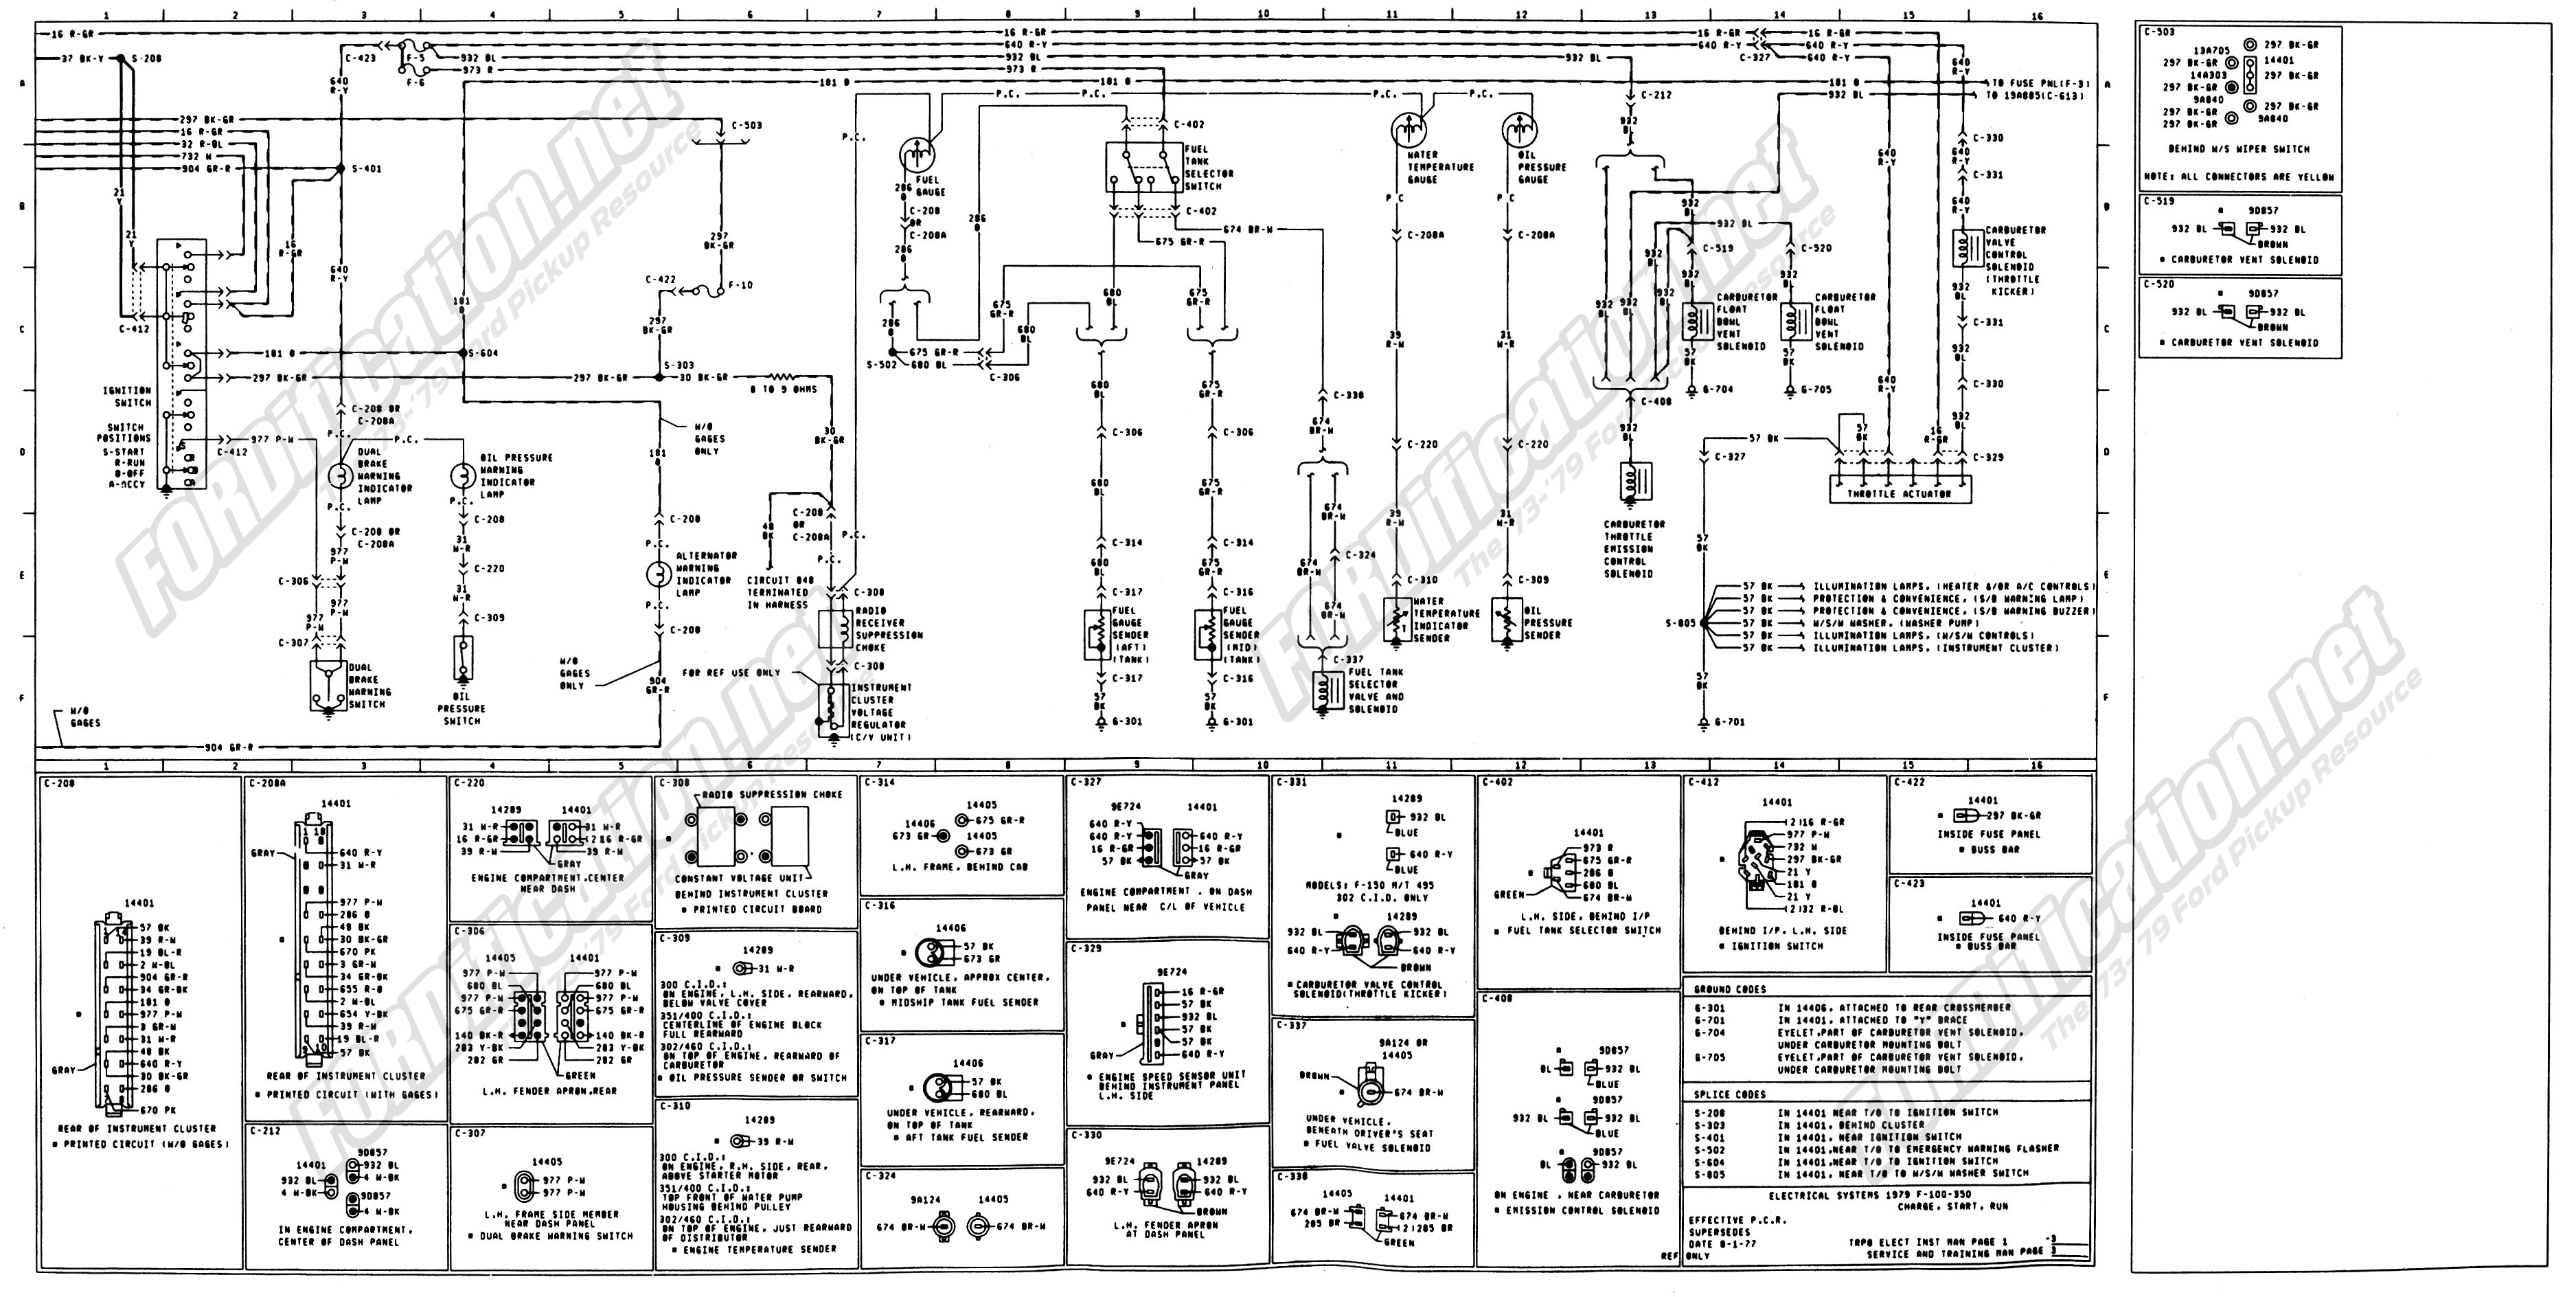 Wiring Diagram For Ford Truck on pickup truck diagram, 1968 ford truck radio, 1968 ford truck cab mount, 1968 ford truck parts, 1968 ford truck brochure, 1968 ford truck exhaust, 1968 ford truck air cleaner, 1968 ford truck shop manual, truck parts diagram, 93 ford relay diagram, 1968 ford truck transmission, 1968 ford truck wire schematic drawing, 1968 ford truck carburetor, ford truck engine diagram, ford truck rear brake diagram, 1968 ford truck wheels,